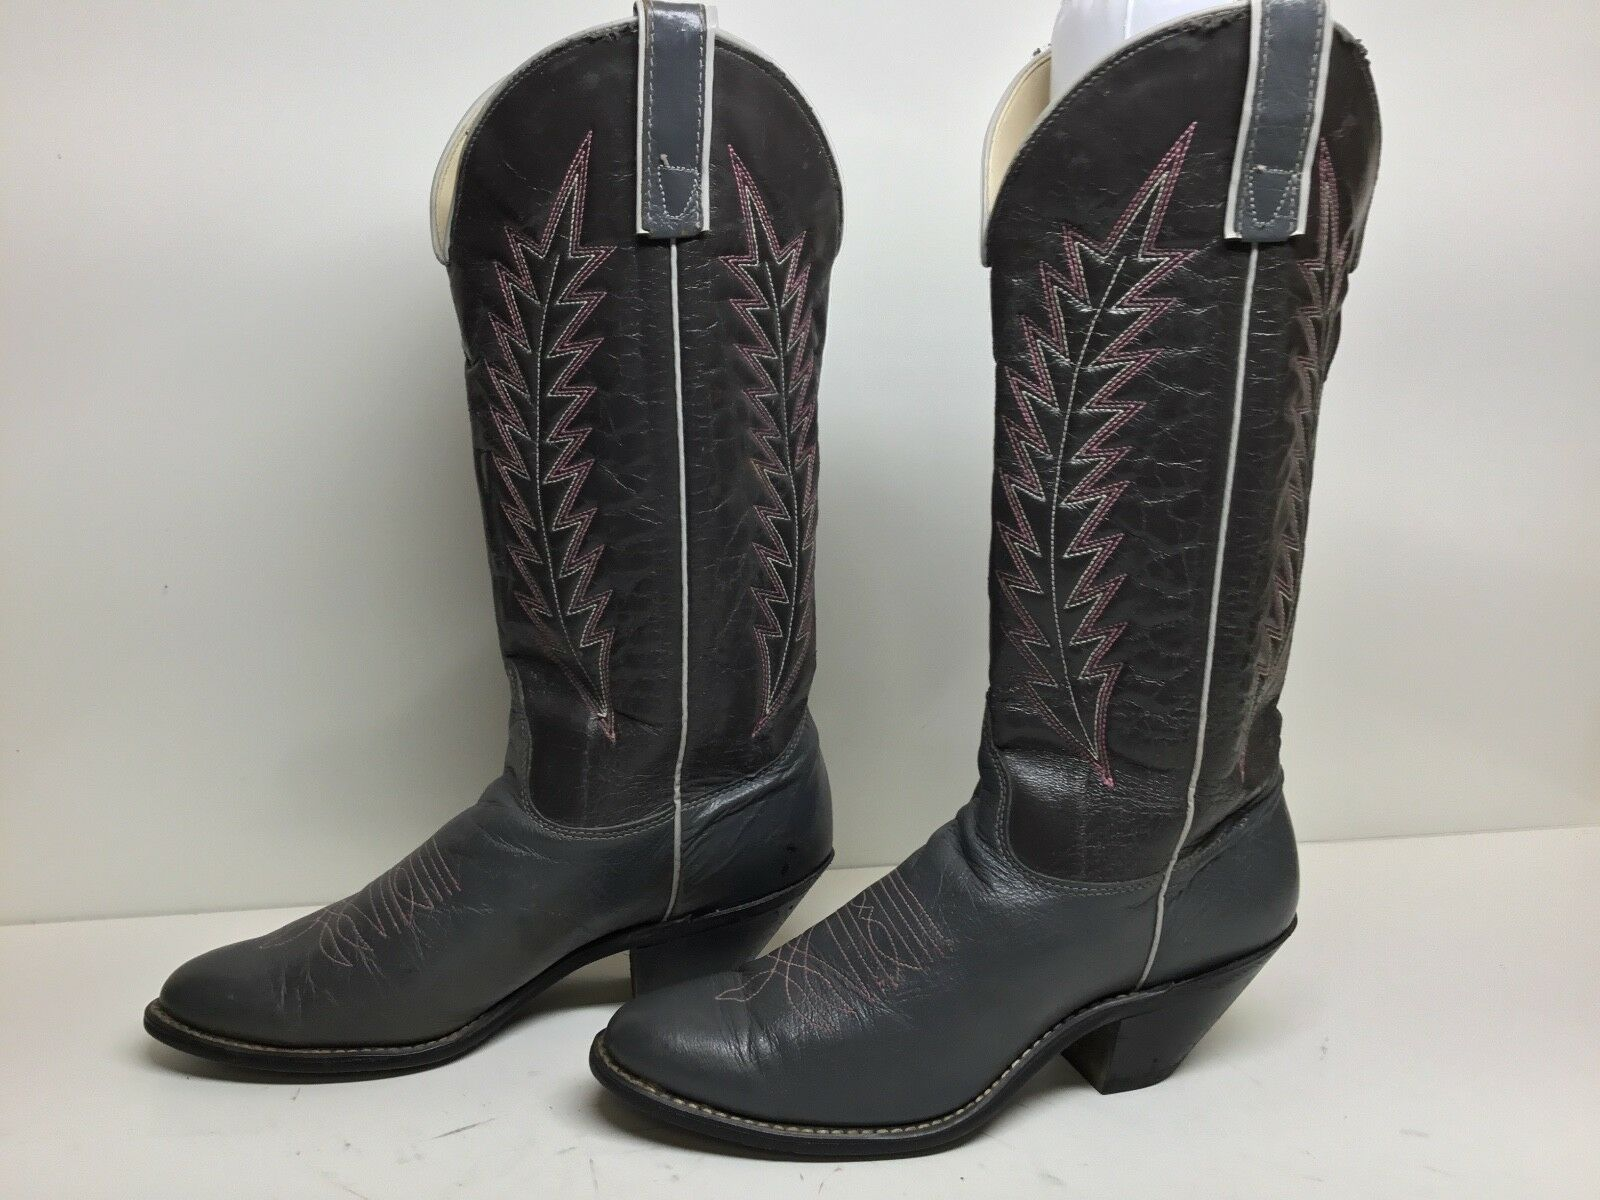 VTG GRAY WOMENS TEXAS COWBOY LEATHER GRAY VTG BOOTS SIZE 7.5 M 2bdd8f